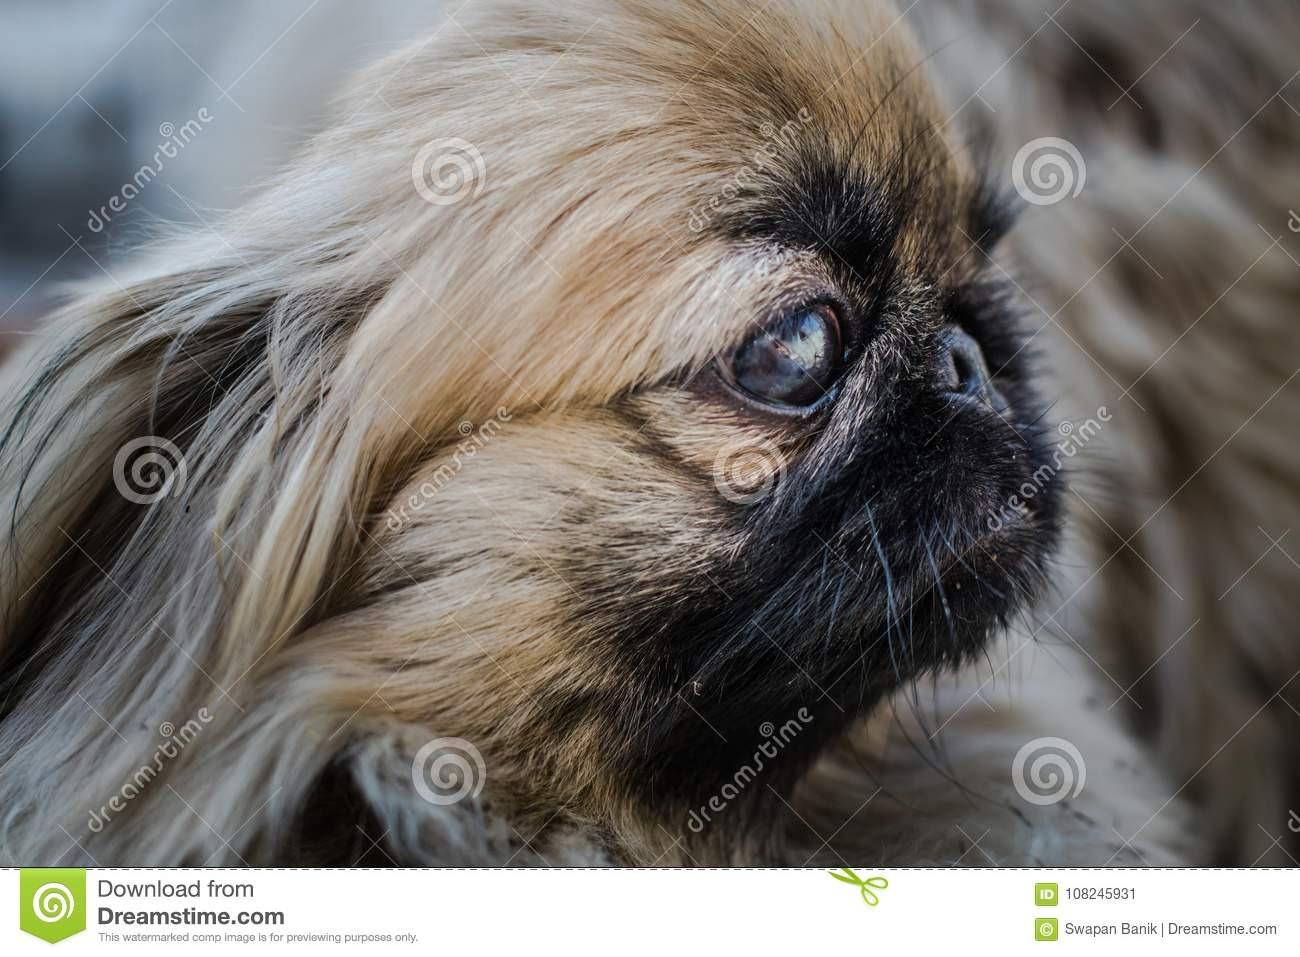 Face Of Pekingese Or Lion Dog Stock Image - Image of indoor, cute